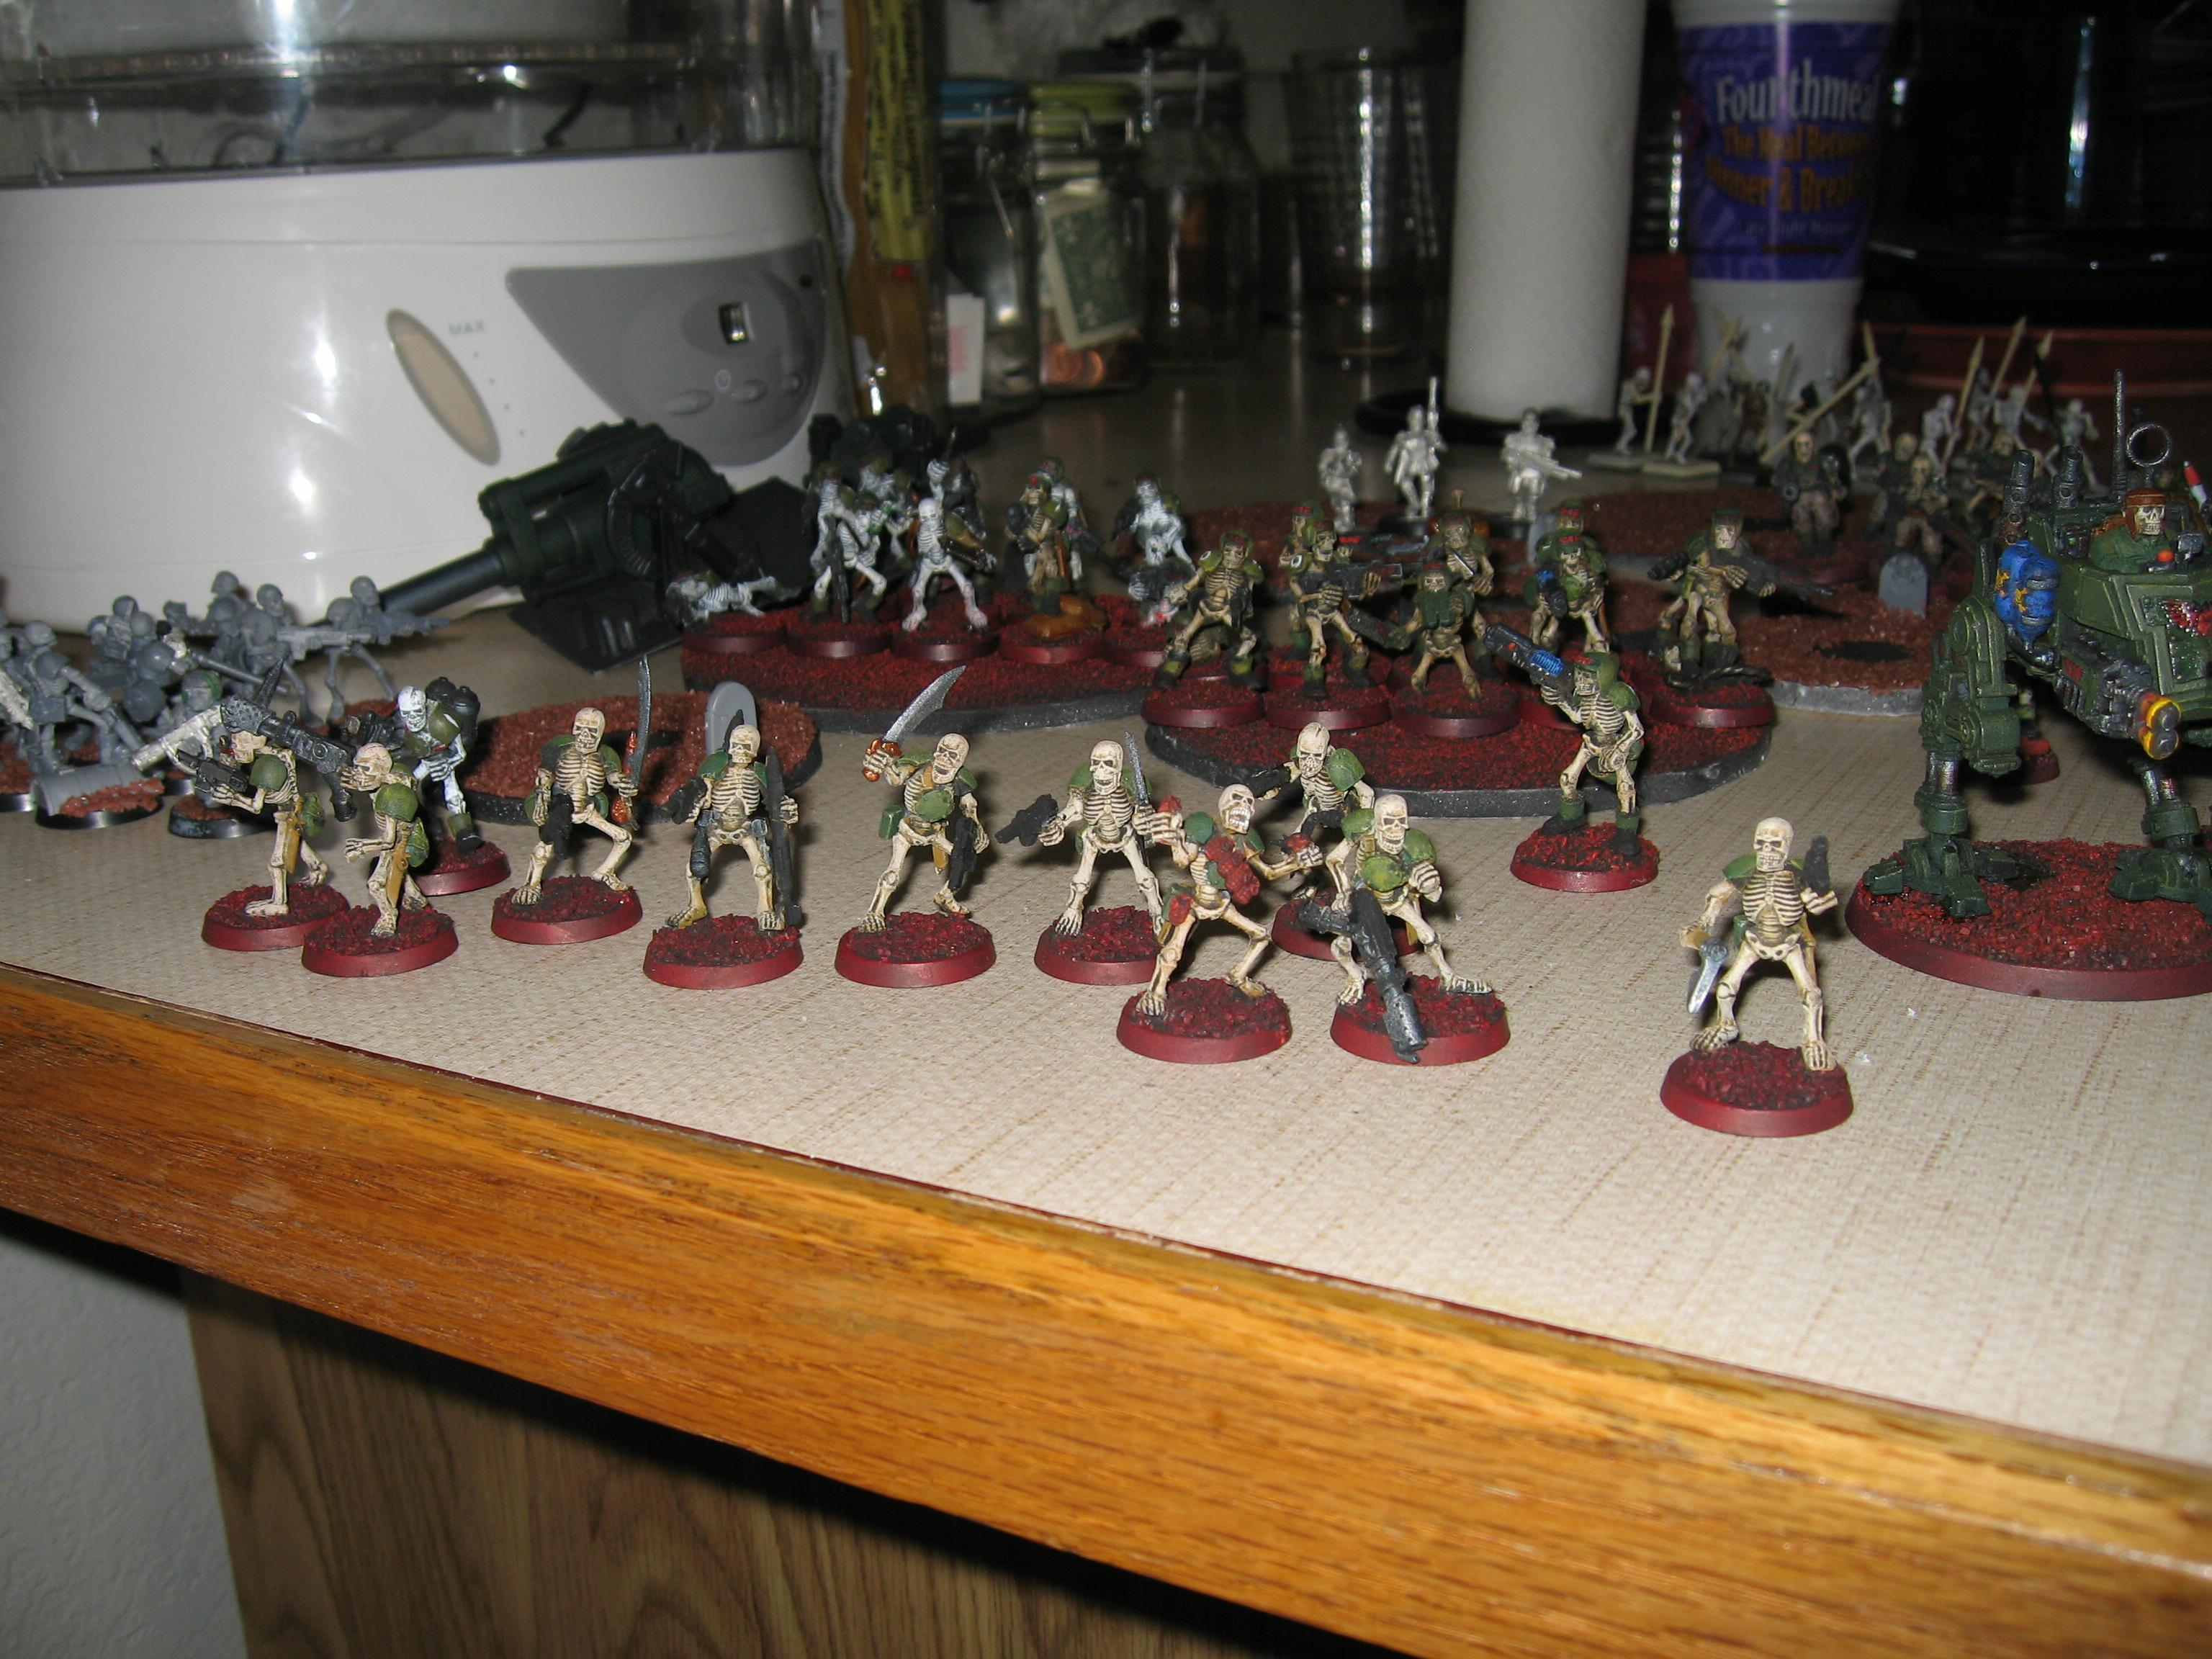 Imperial Guard, Skeletons, Undead, Warhammer 40,000